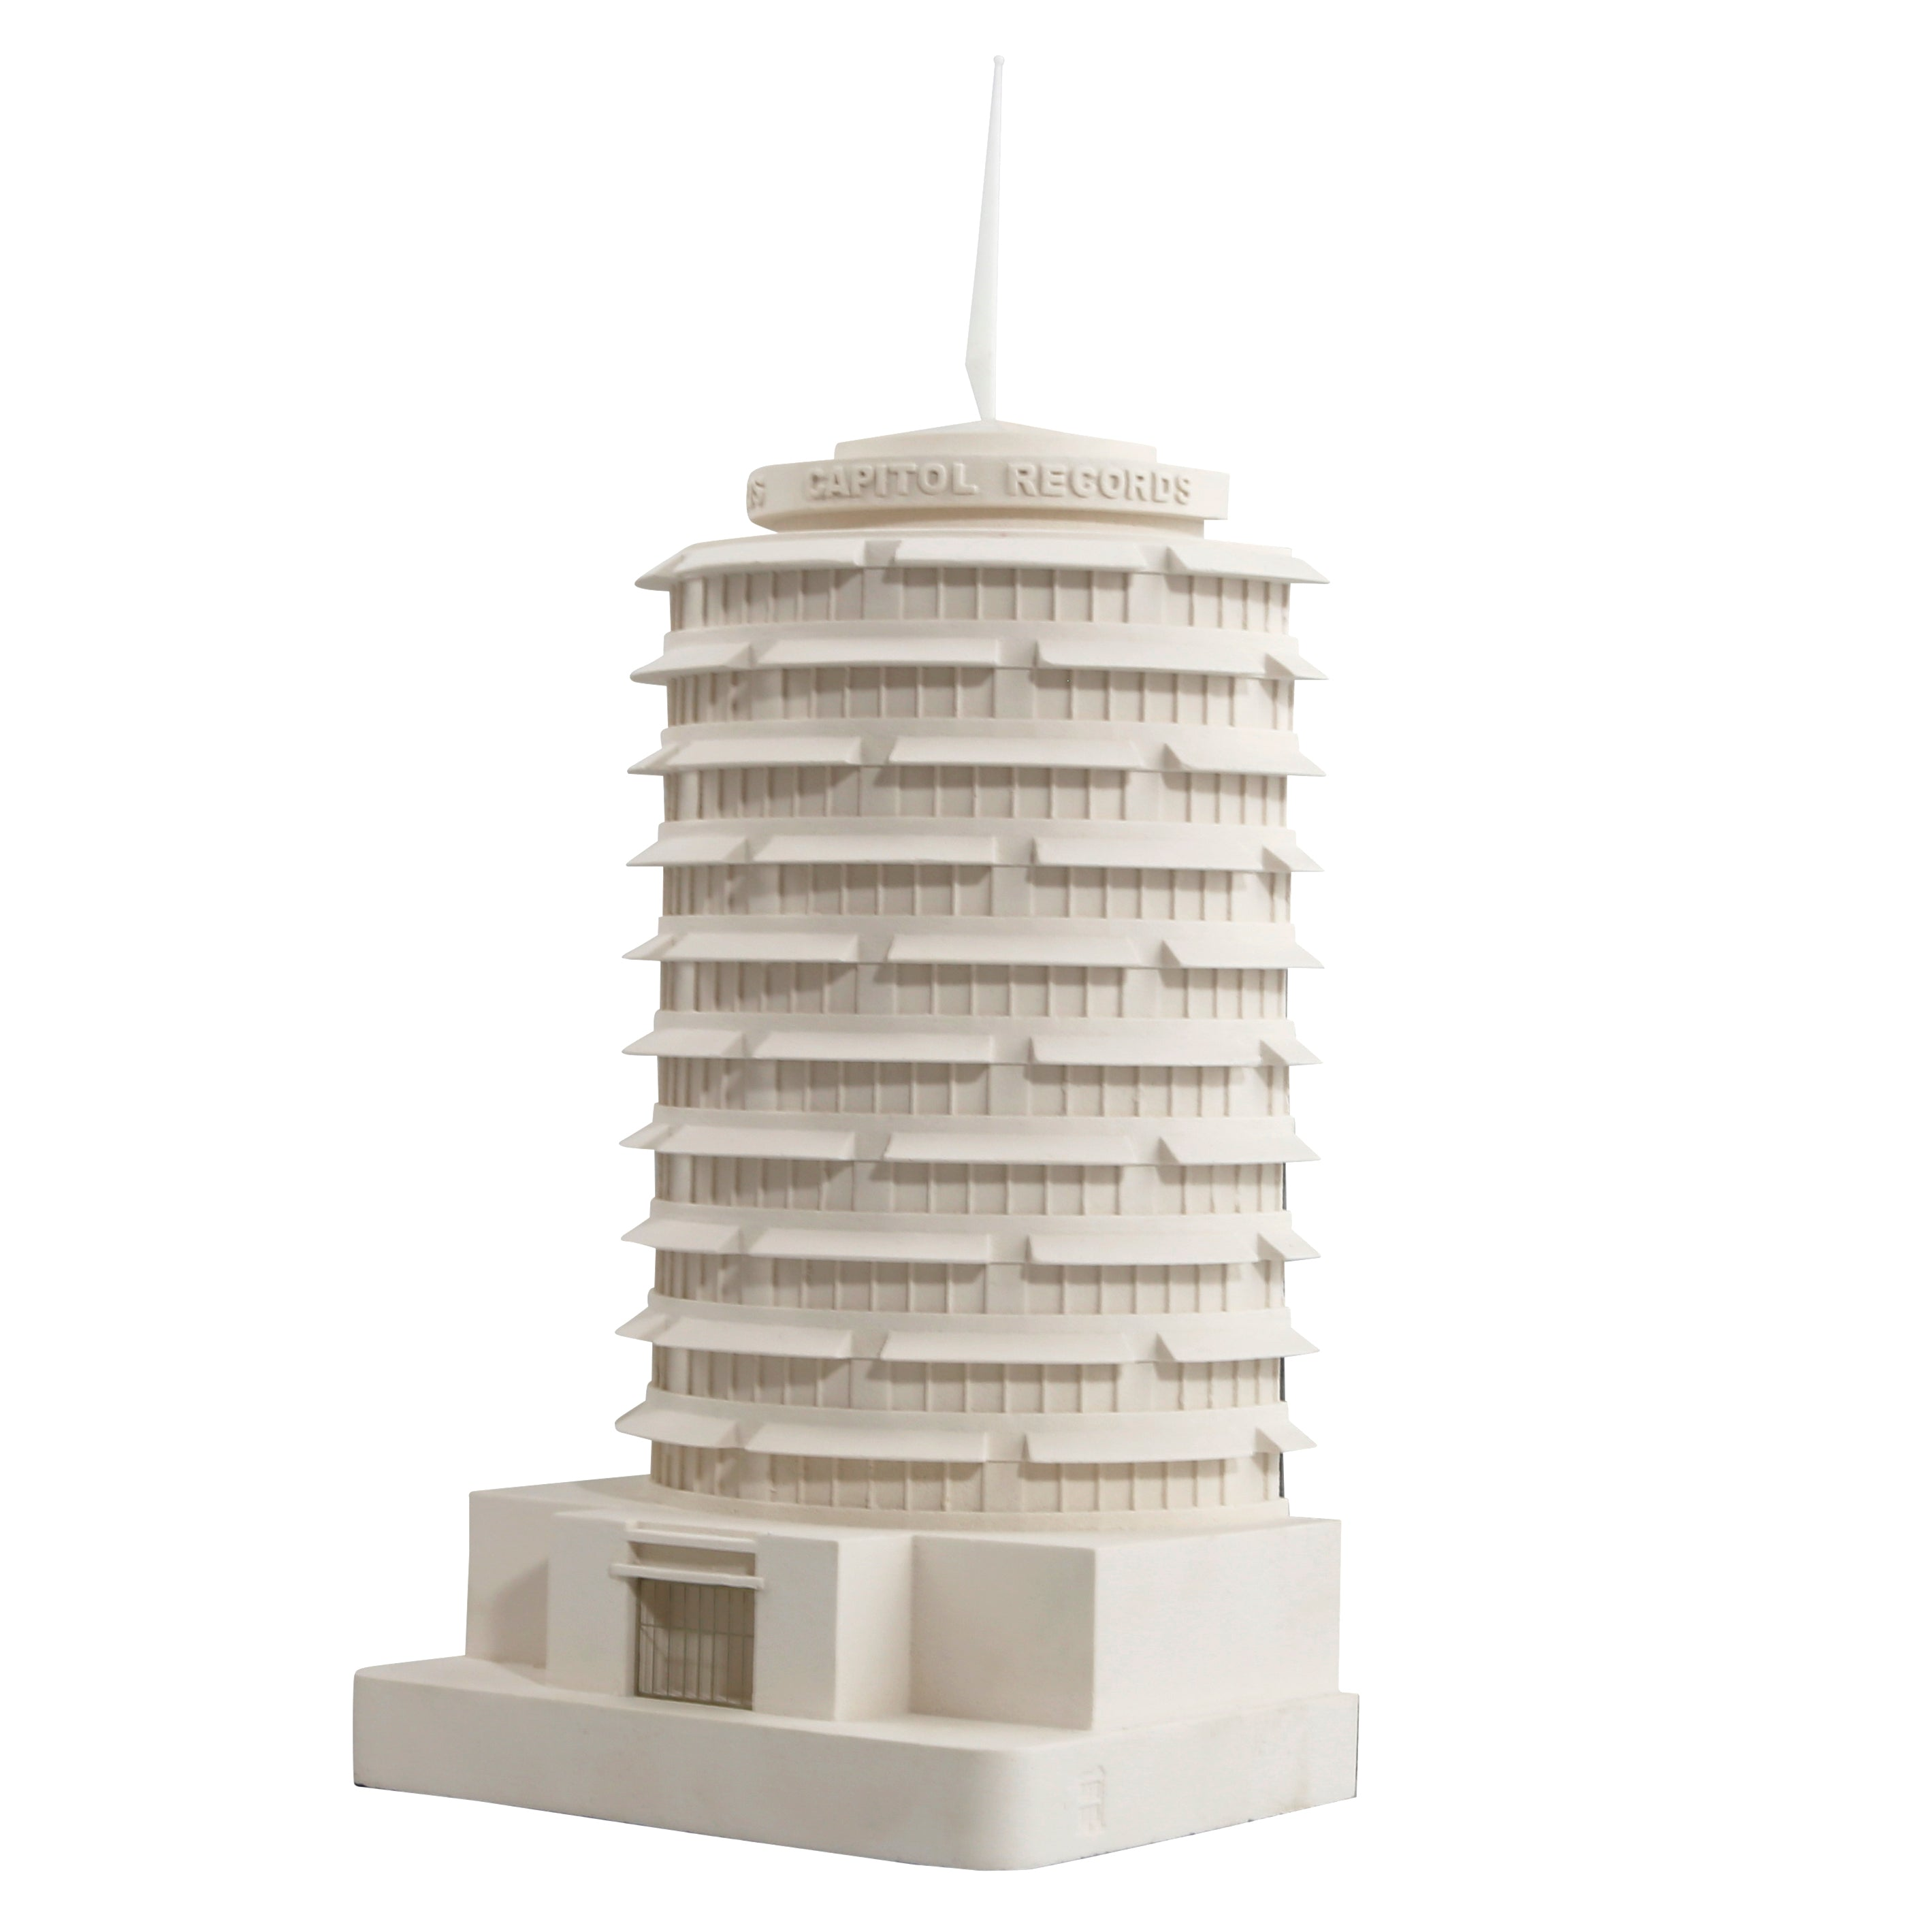 Capitol Records Architectural Model